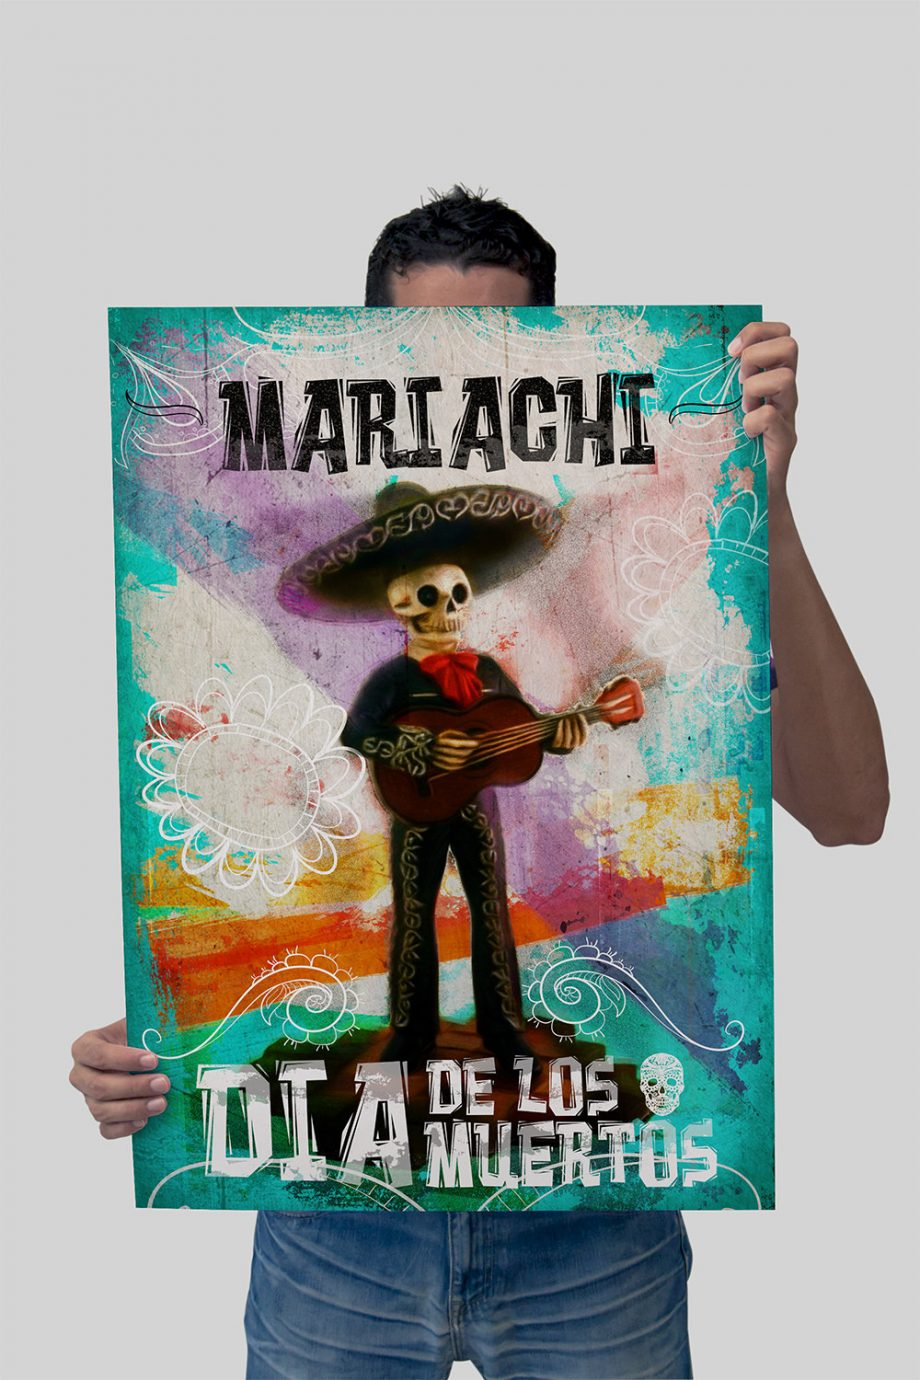 Dia De Los Muertos Mexican Retro Mariachi Skeleton Illustration Art Print Vintage Giclee on Cotton Canvas and Paper Canvas Poster Wall Decor